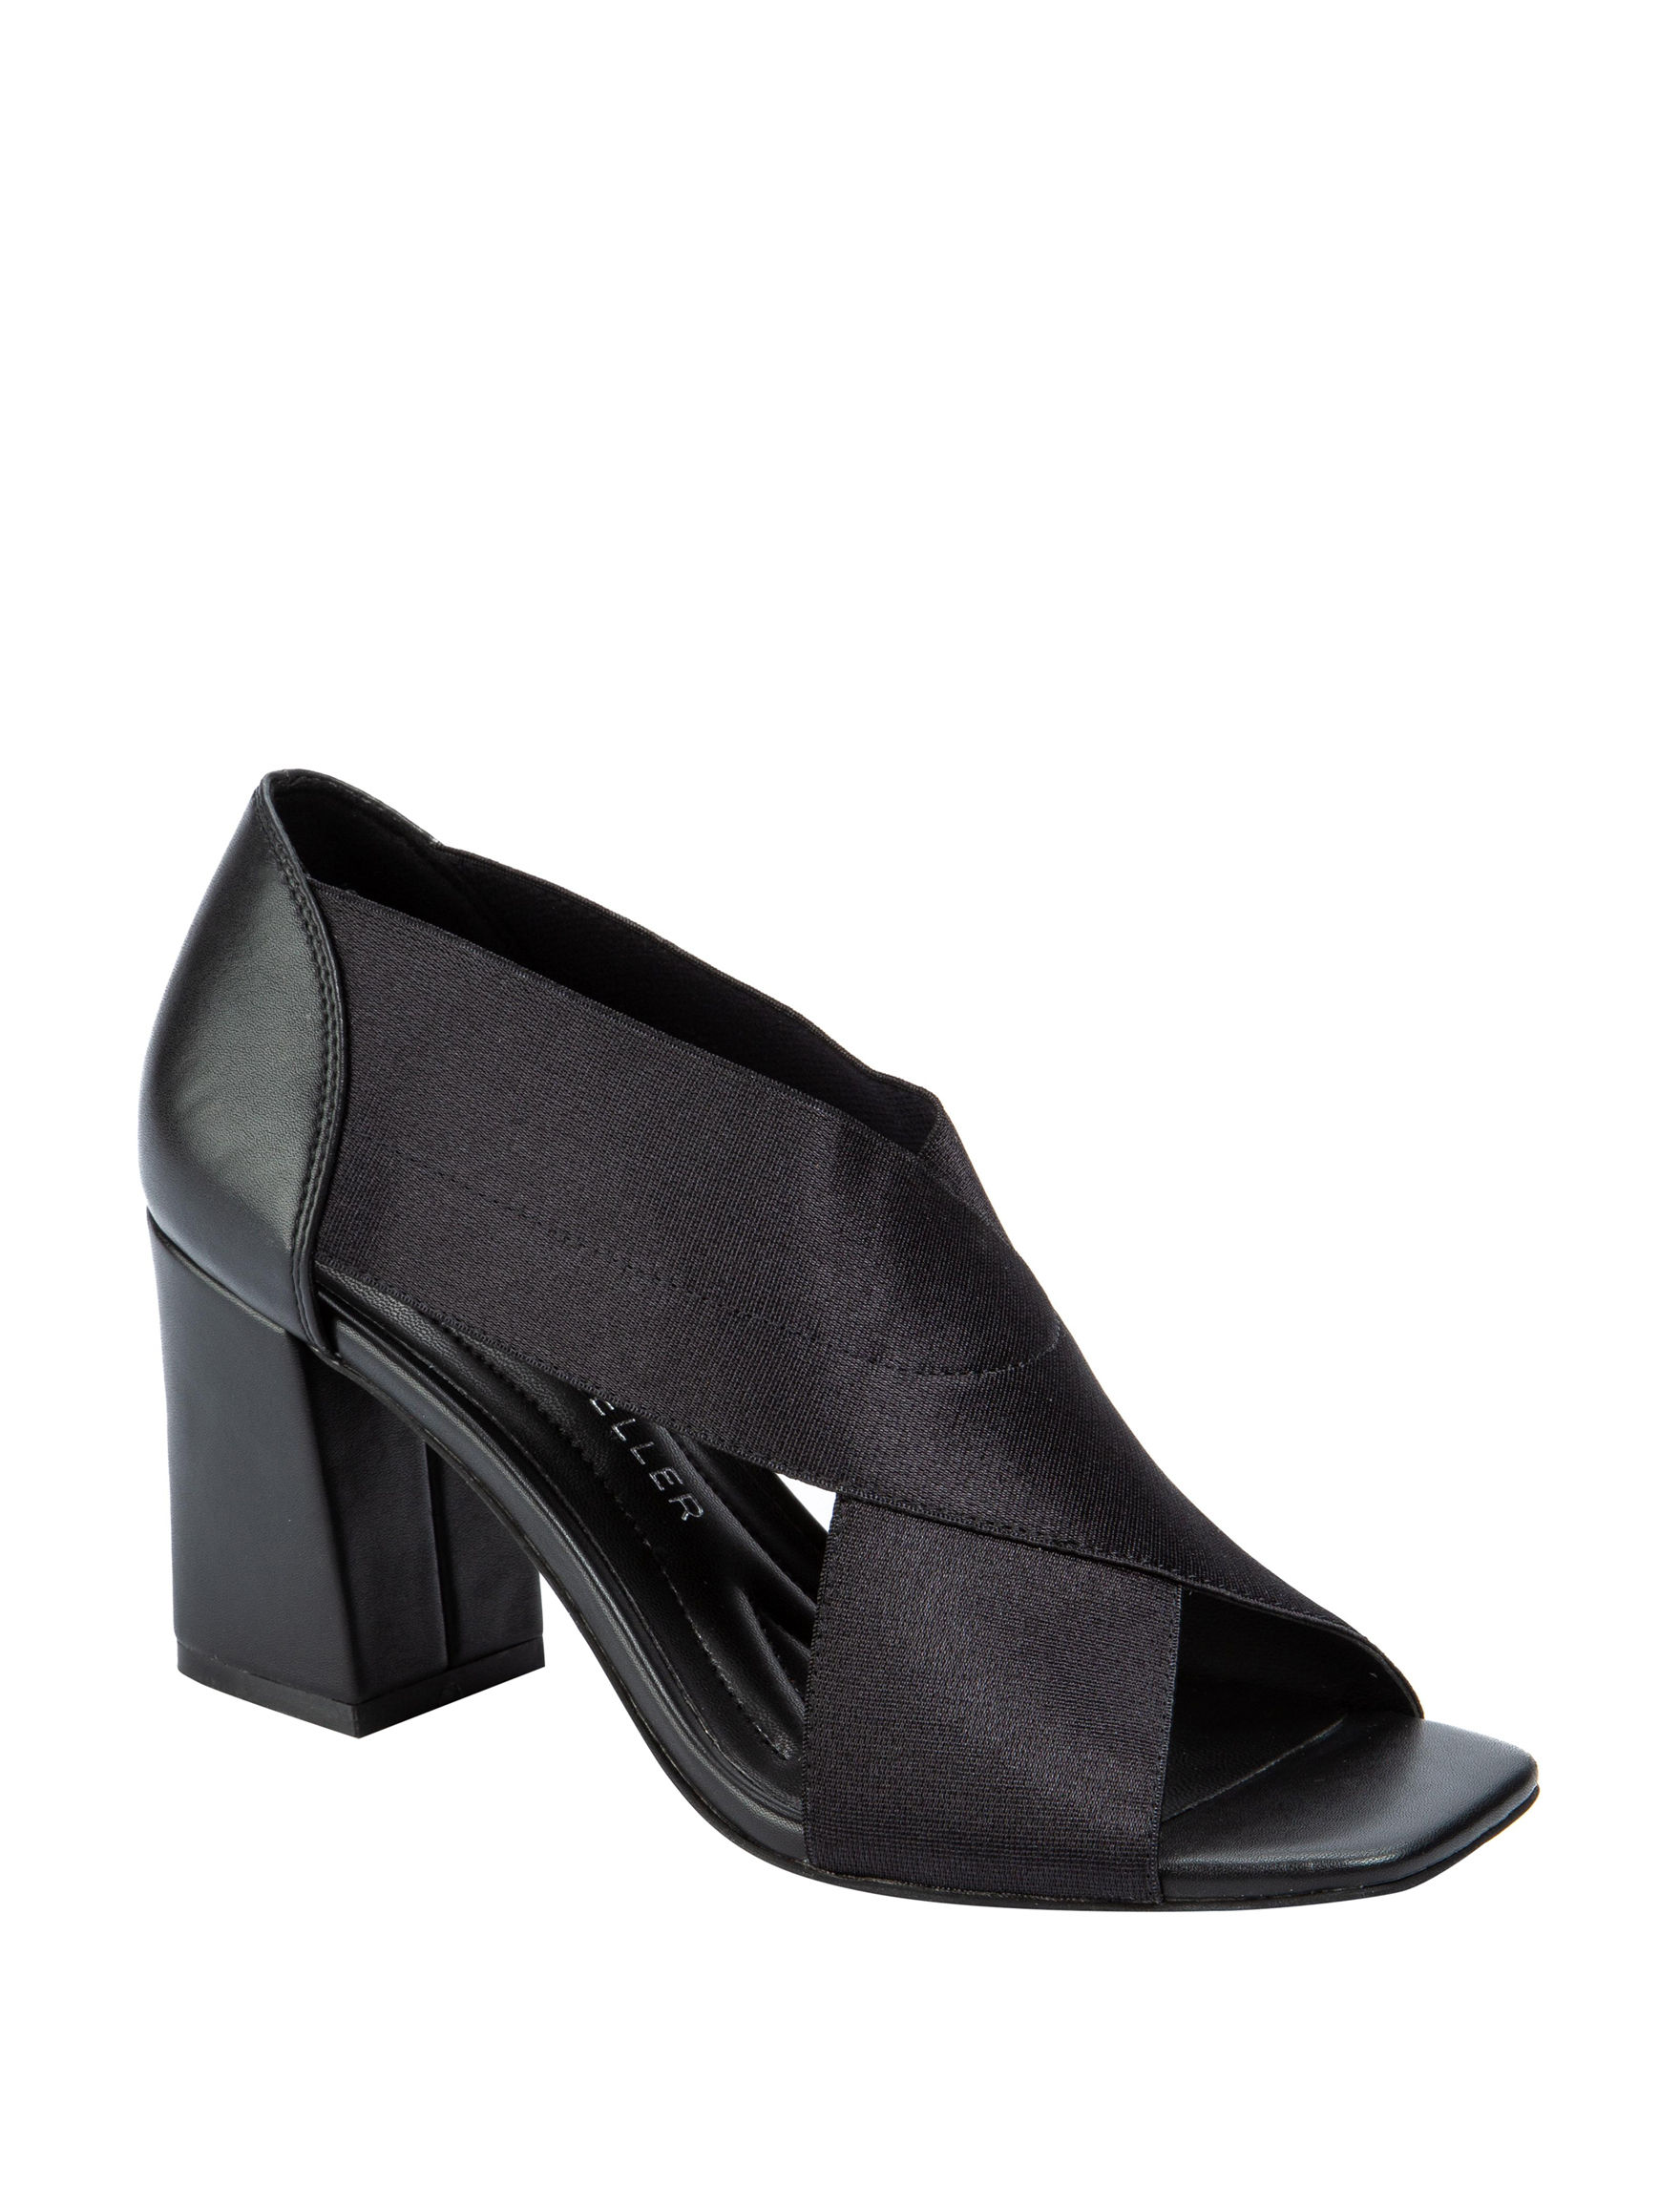 Andrew Geller Black Heeled Sandals Peep Toe